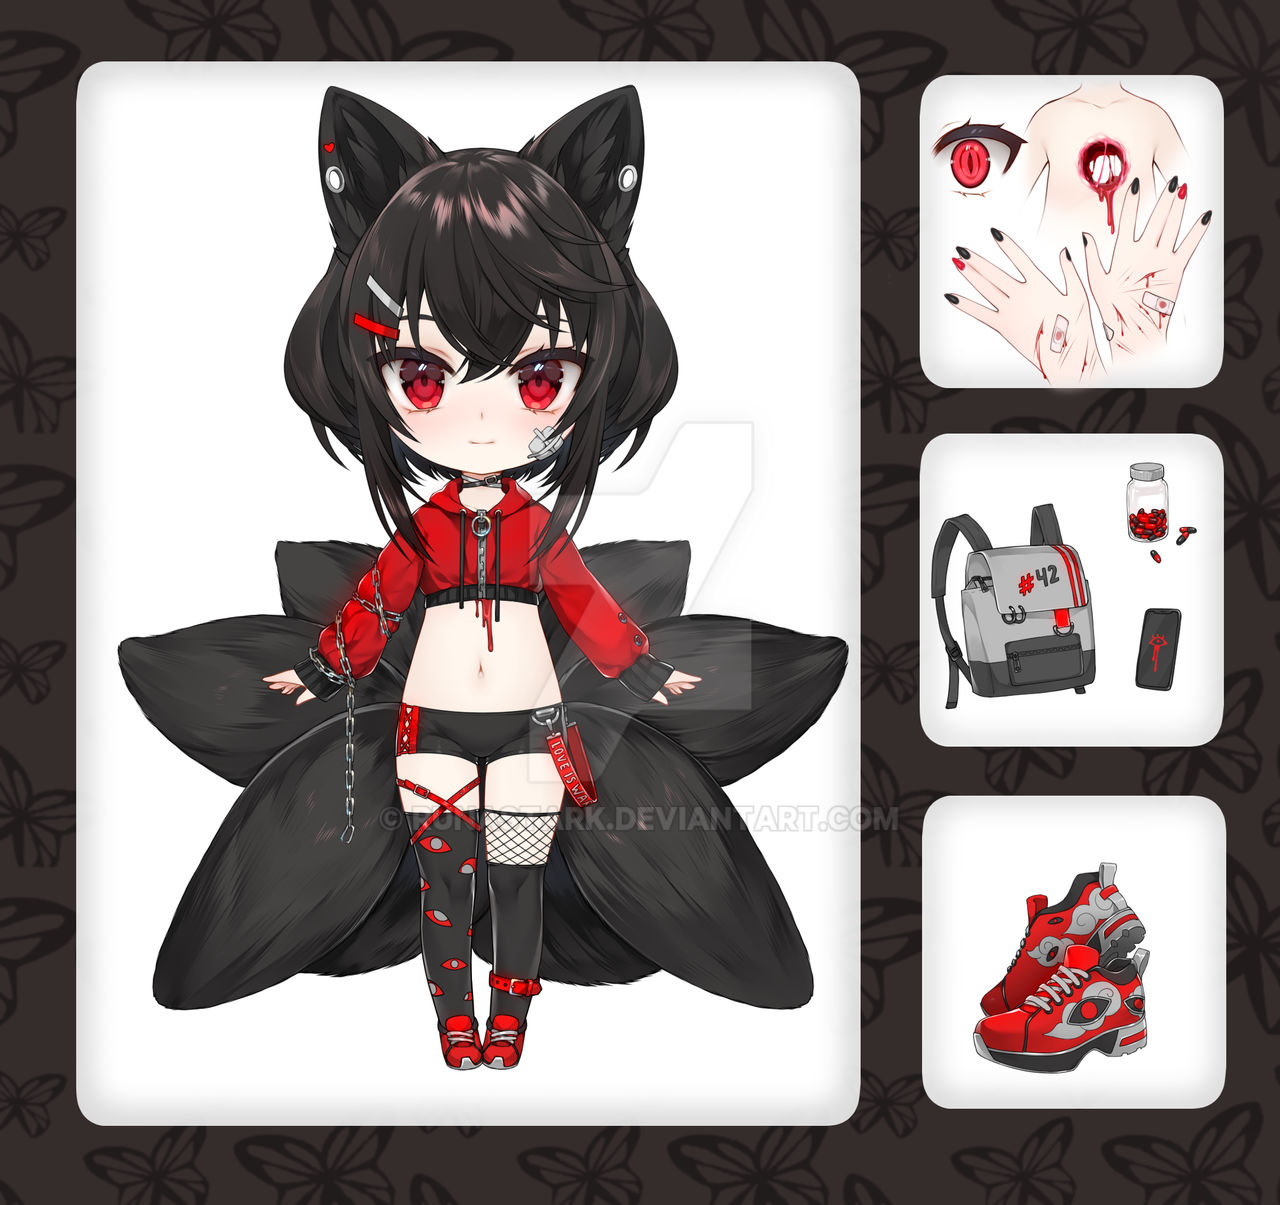 adoptable [closed] auction